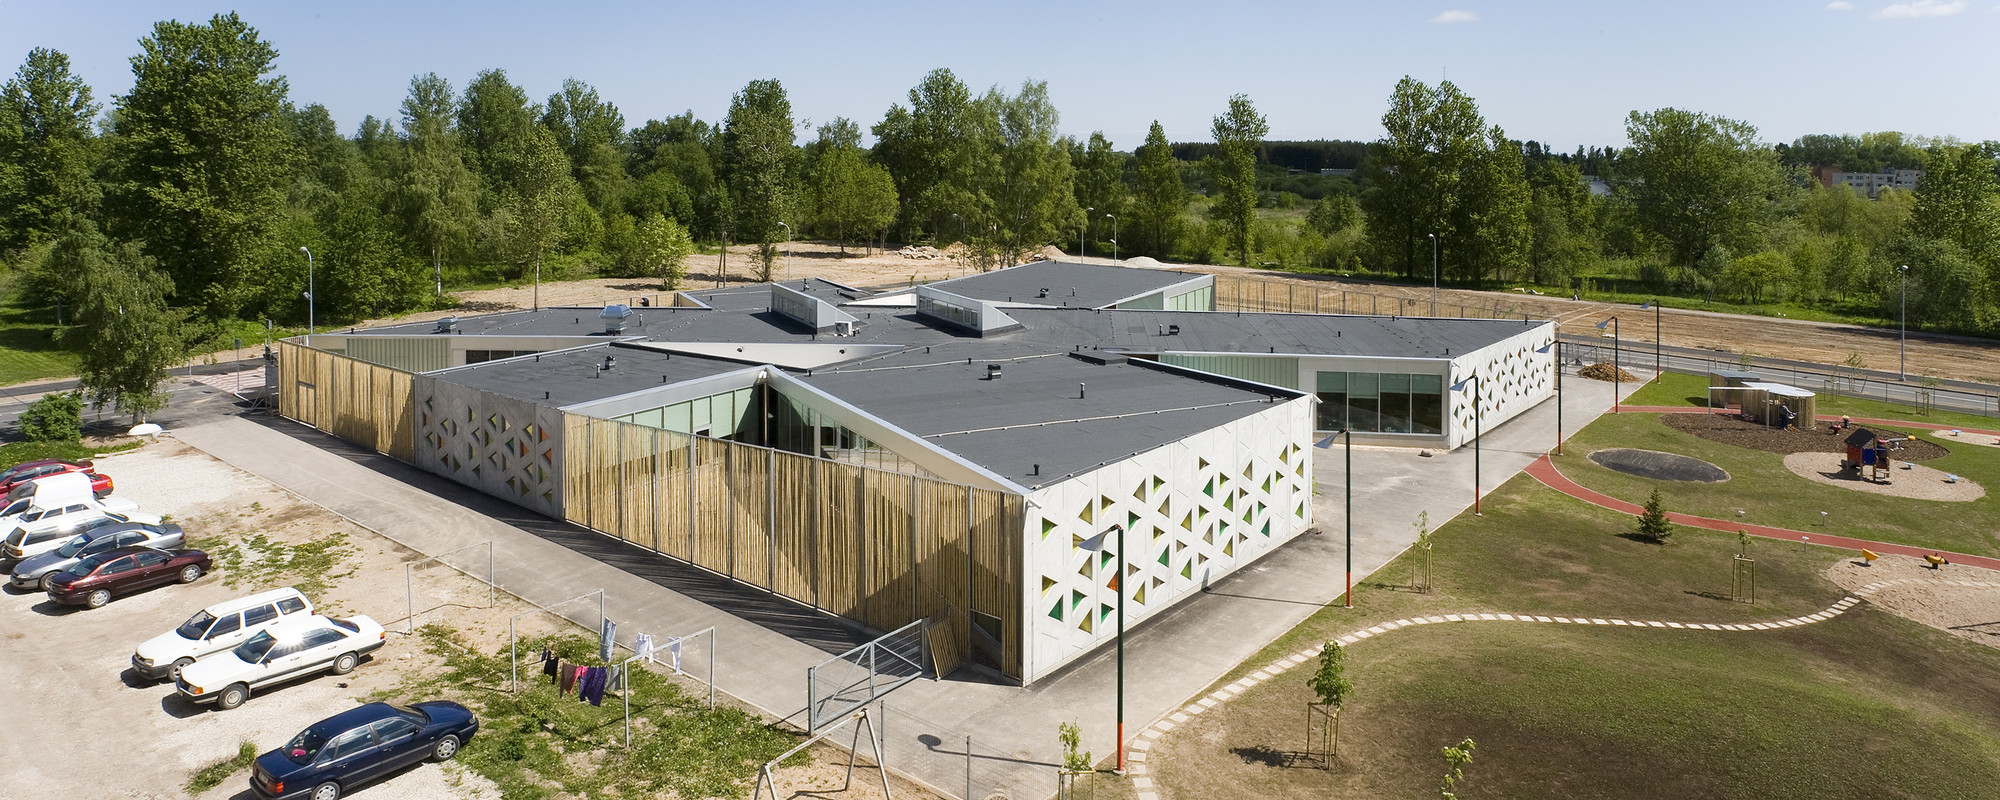 Kindergarten Lotte / Kavakava Architects, © Kaido Haagen